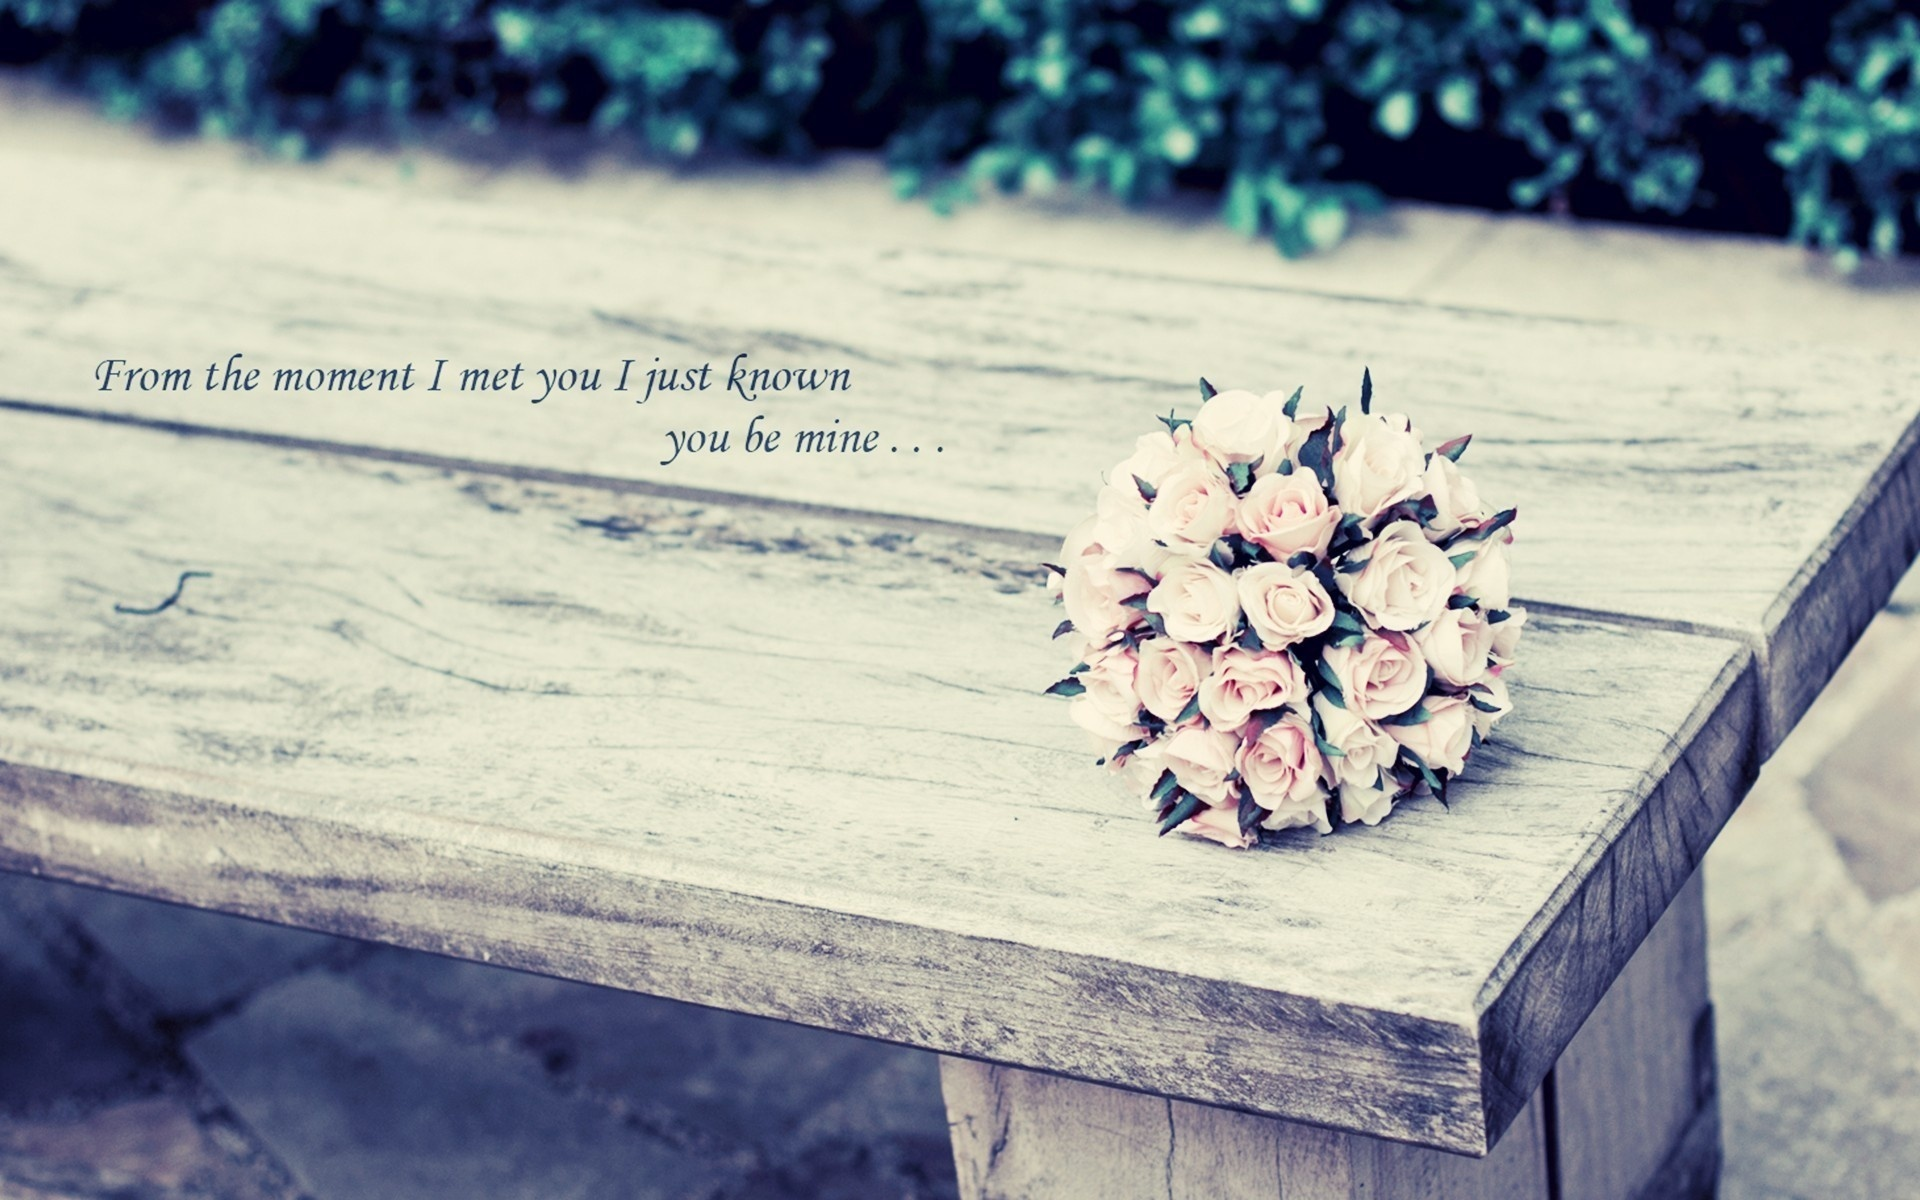 Quotes About Love: Quotes About Love Wallpapers, Pictures, Images